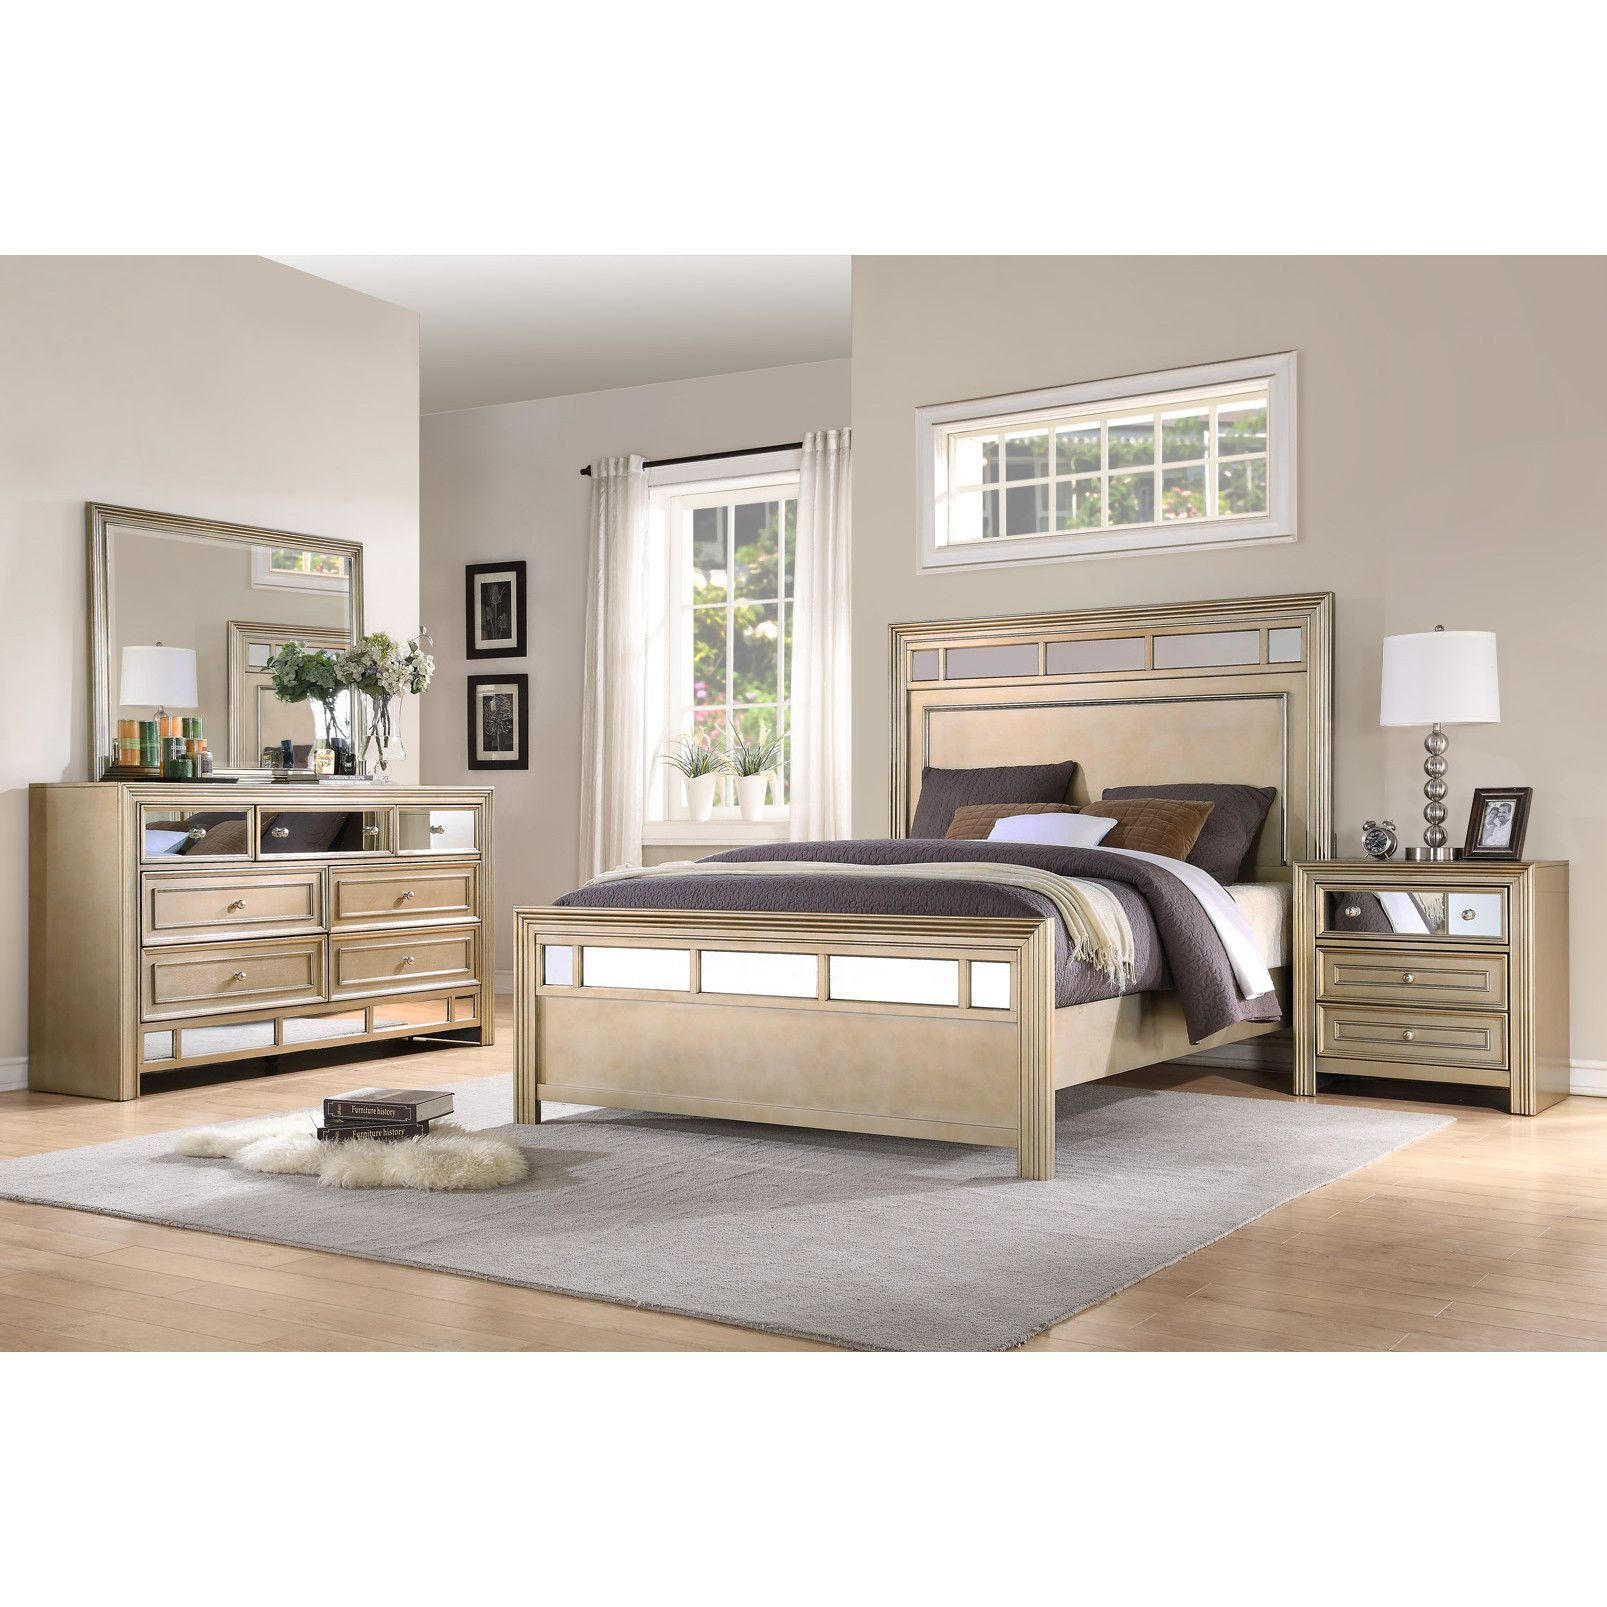 nice wall color  taupey with white trim  bedroom sets